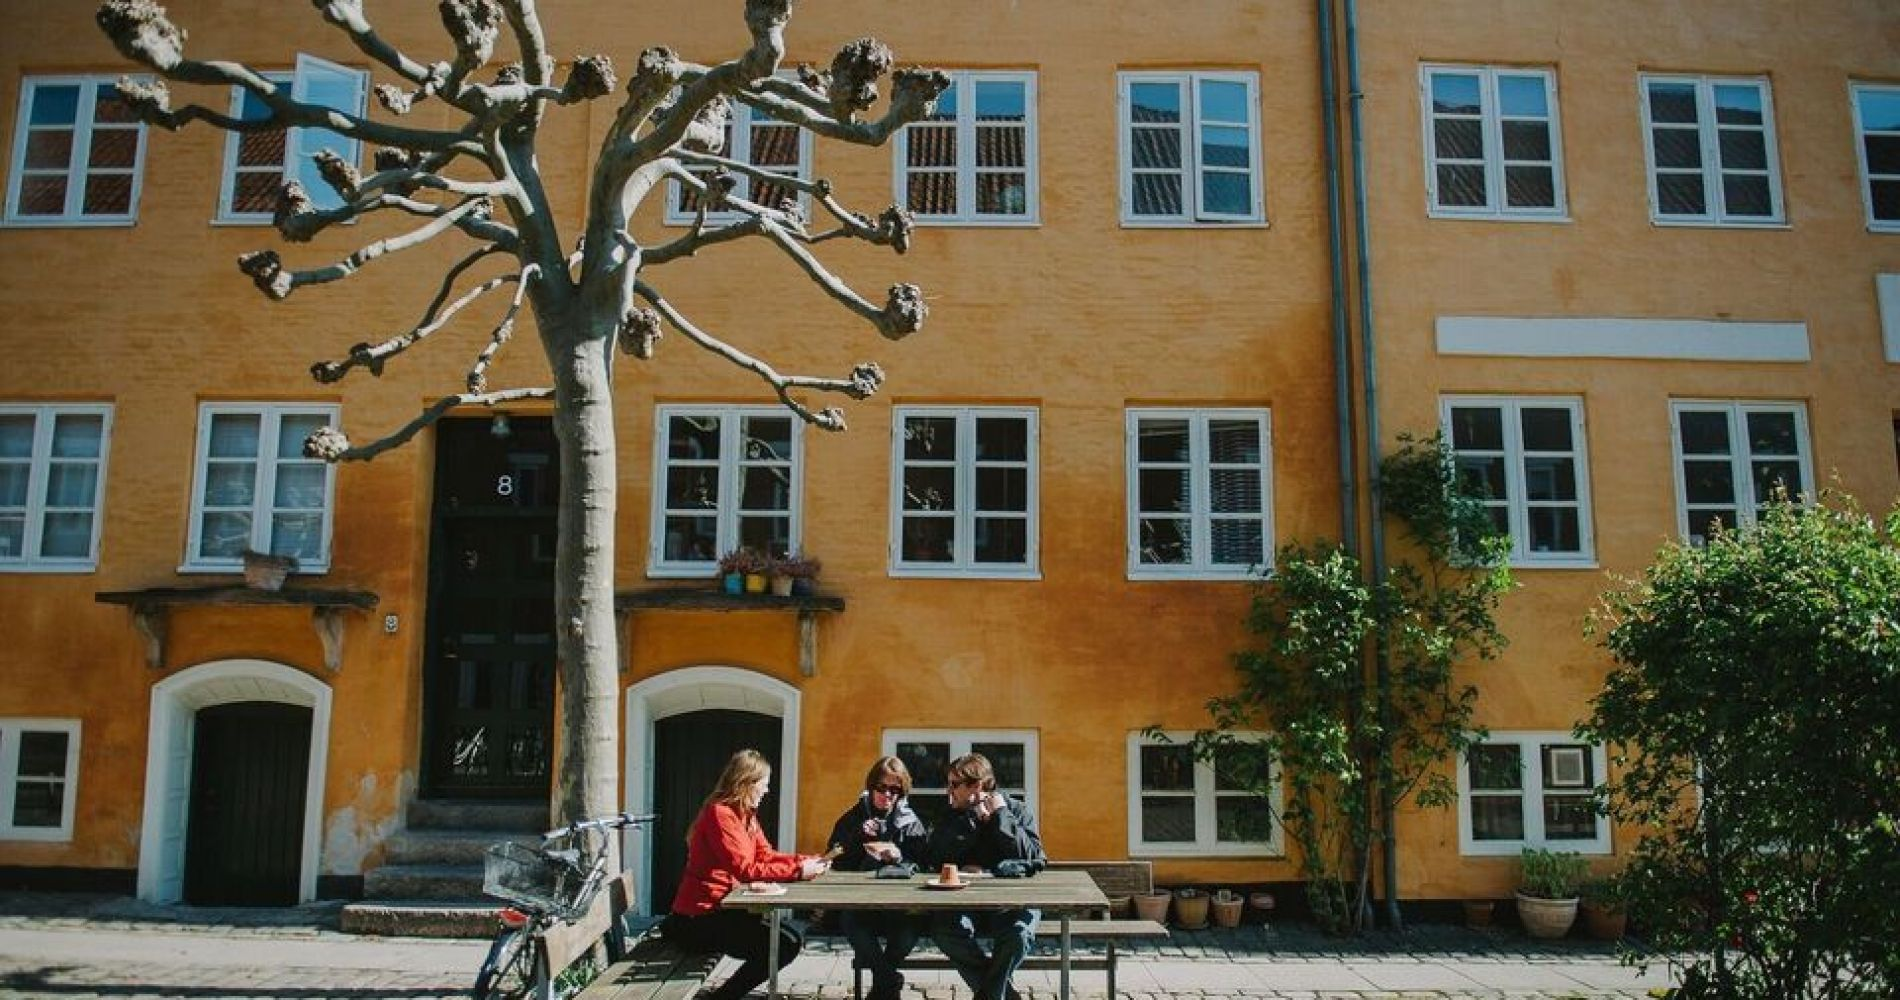 Copenhagen: Hygge and Happiness Half-Day Tour